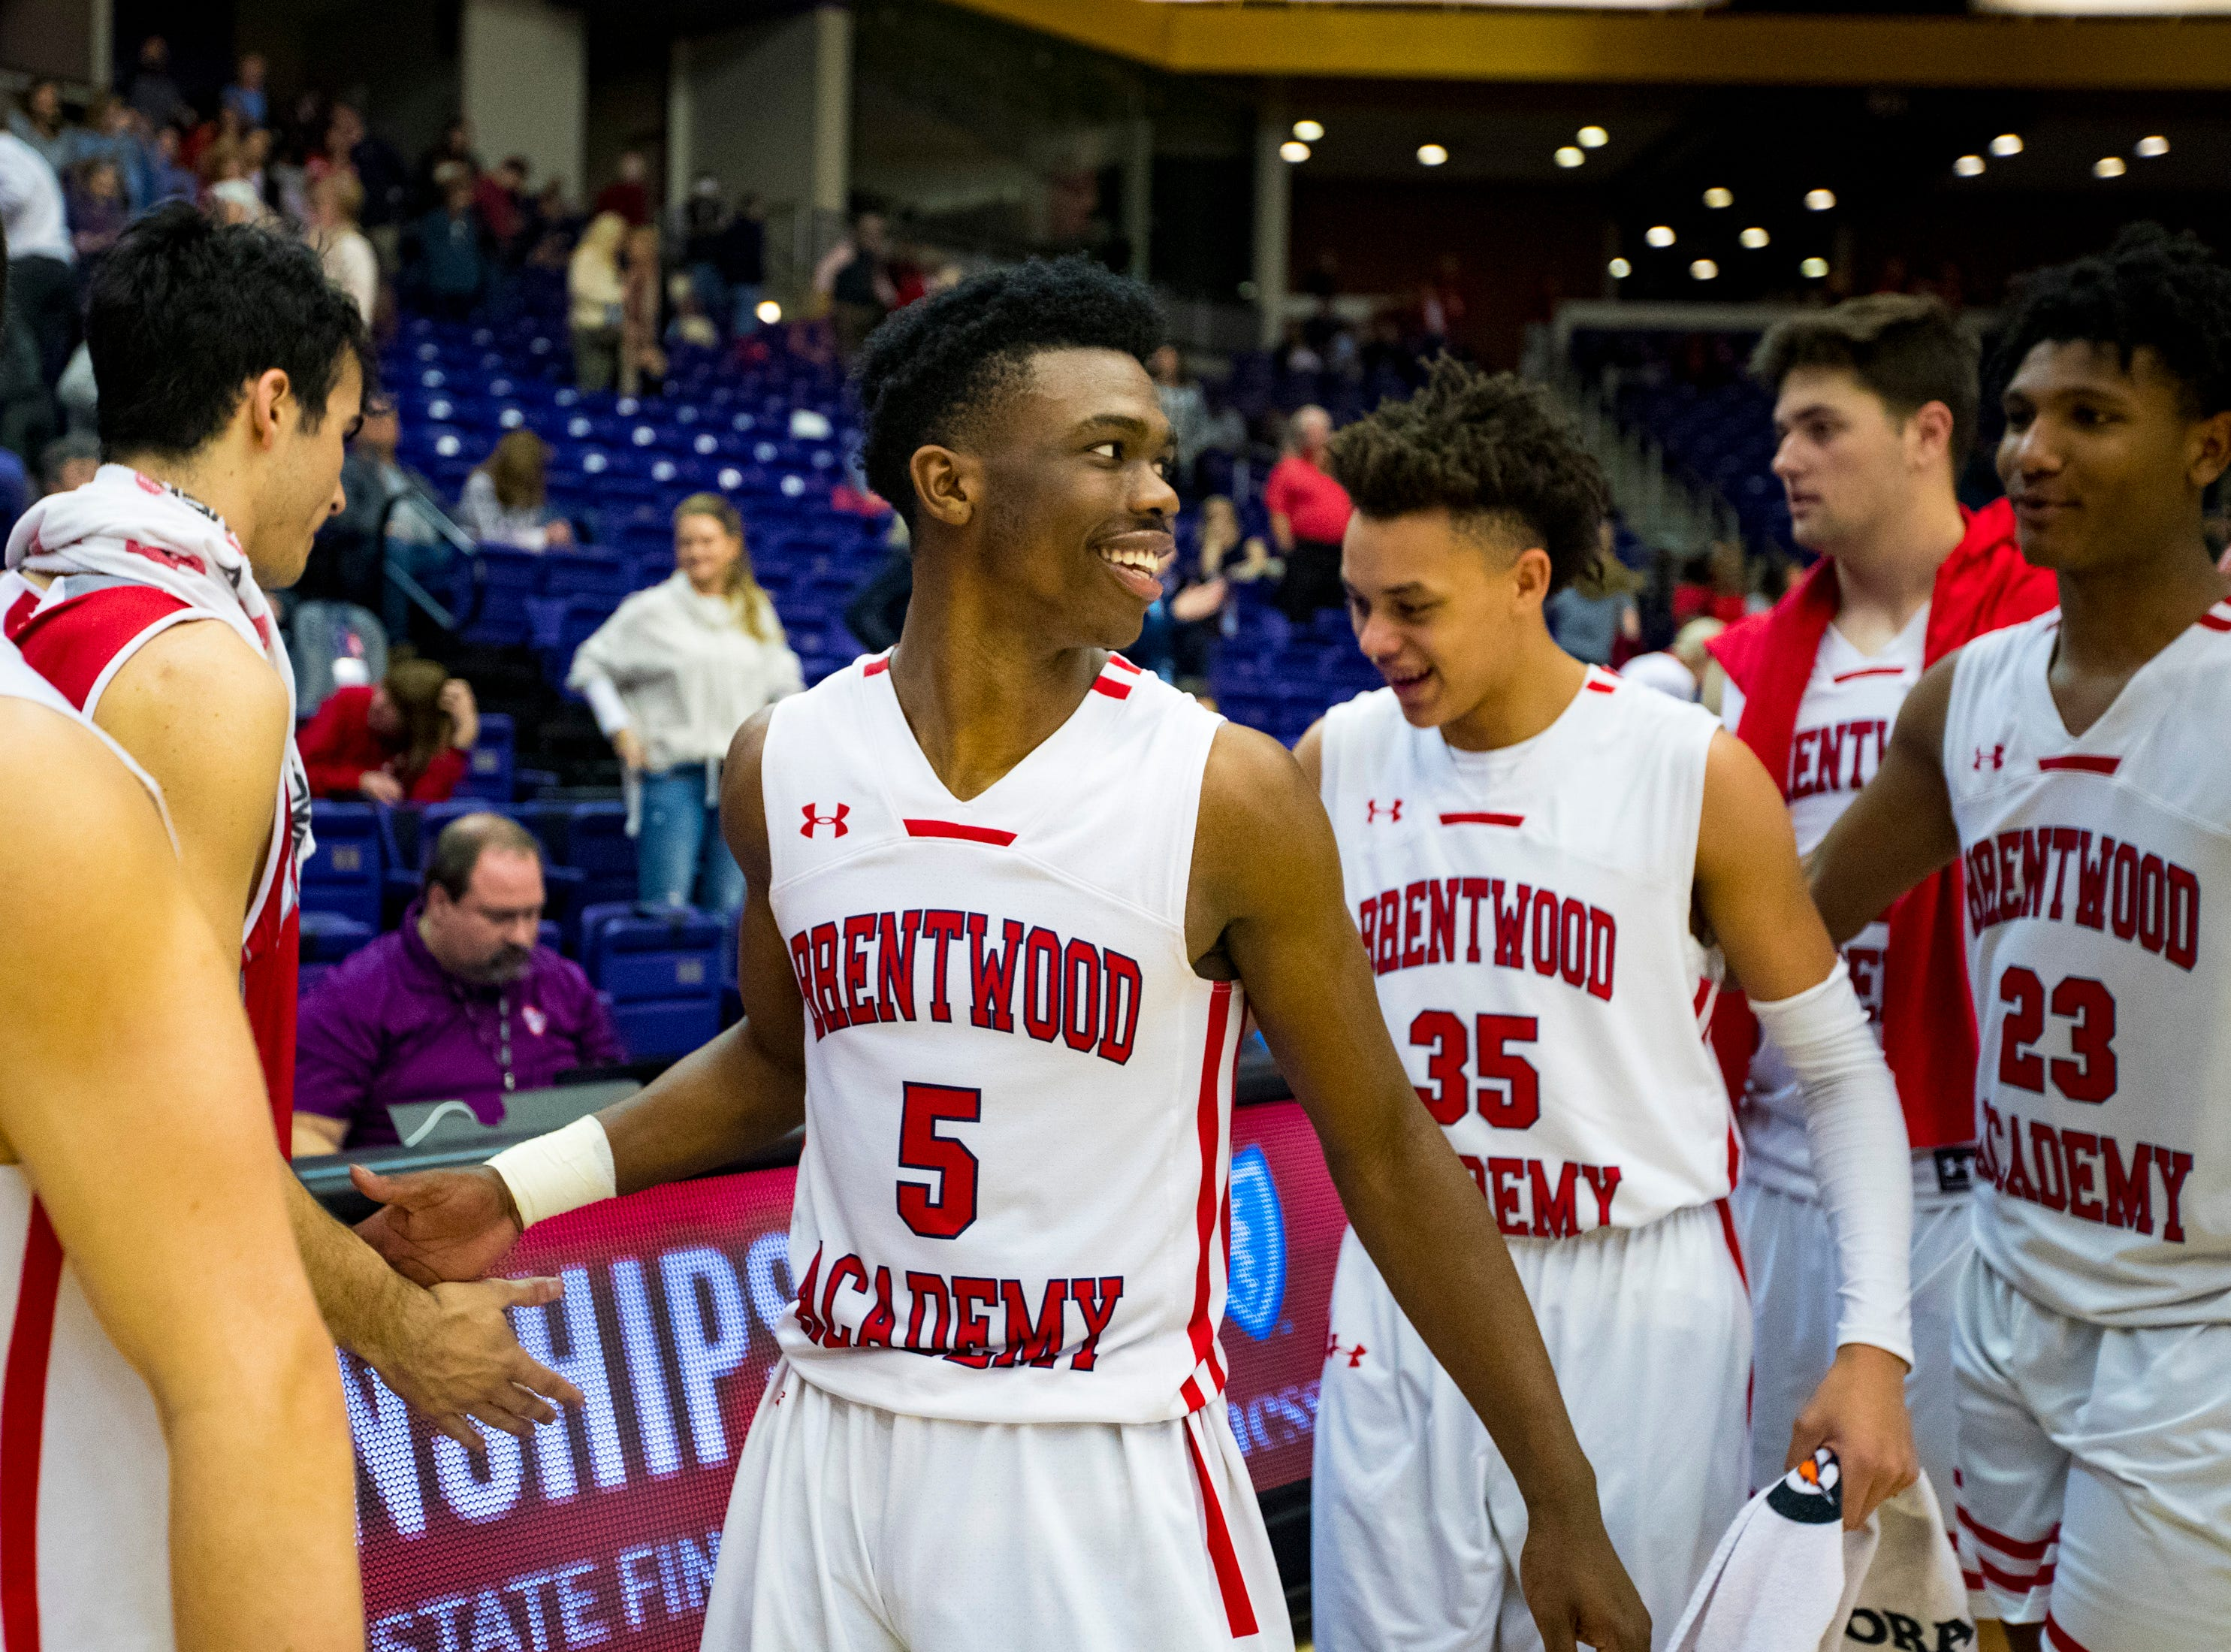 Brentwood Academy's Marcus Fitzgerald (5) smiles while shaking hands after Brentwood Academy's game against Baylor in the semifinal round of the TSSAA Division II Class AA State Championships at Lipscomb University's Allen Arena in Nashville on Thursday, Feb. 28, 2019.